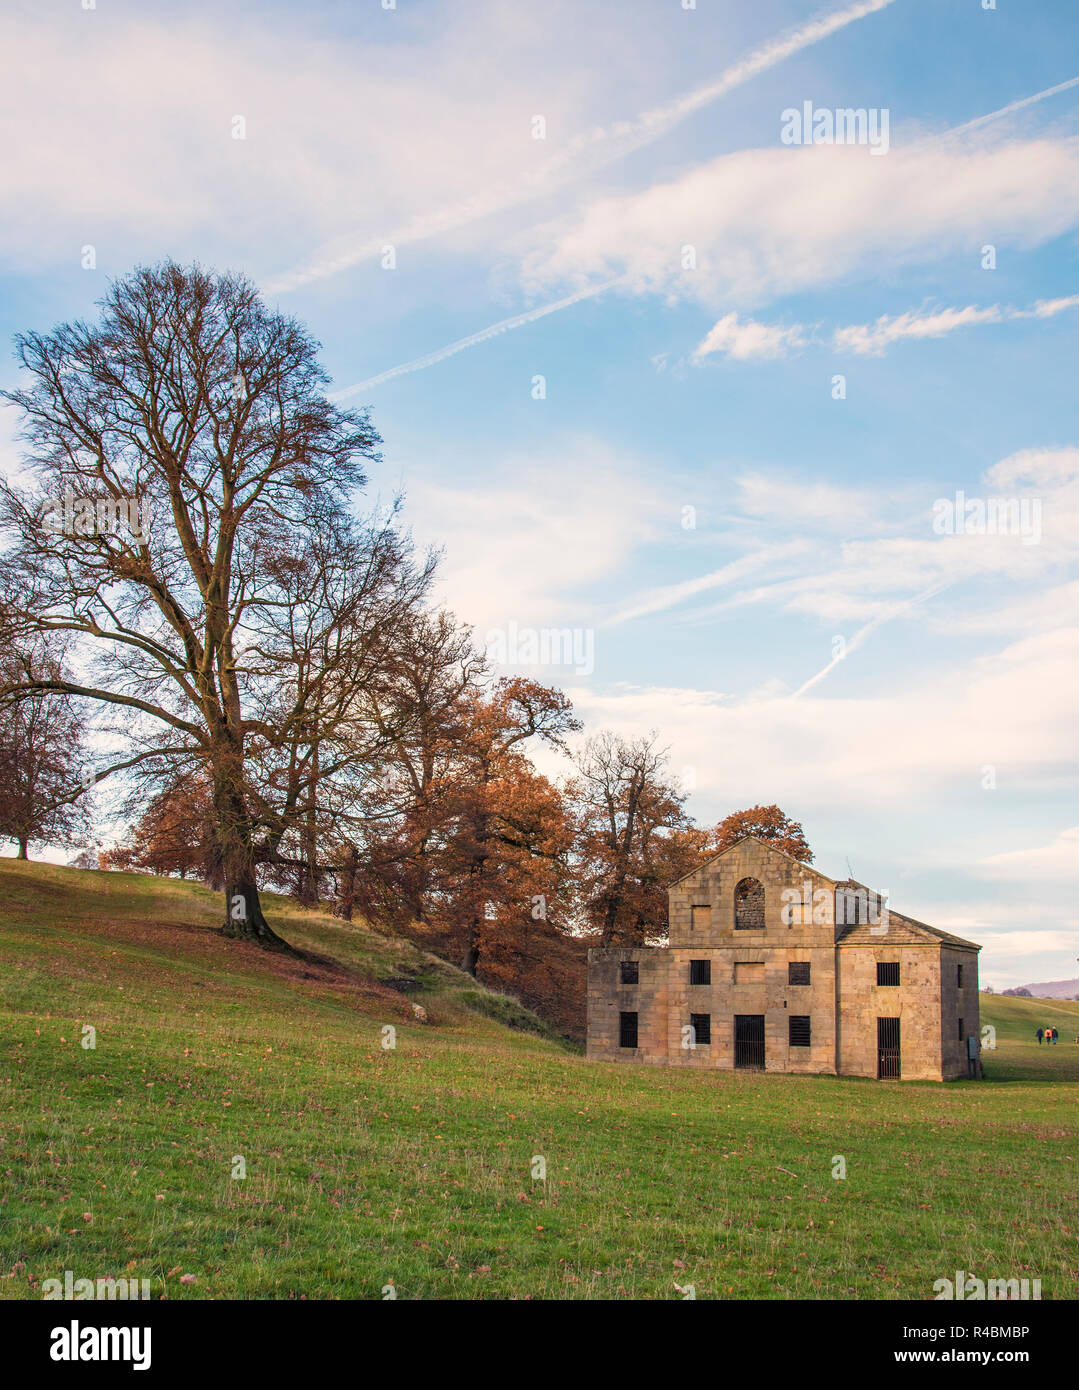 James Paine`s mill , a successful architect of the mid 18th century created the corn mill situated at Chatsworth Park in the peak district England UK. Stock Photo